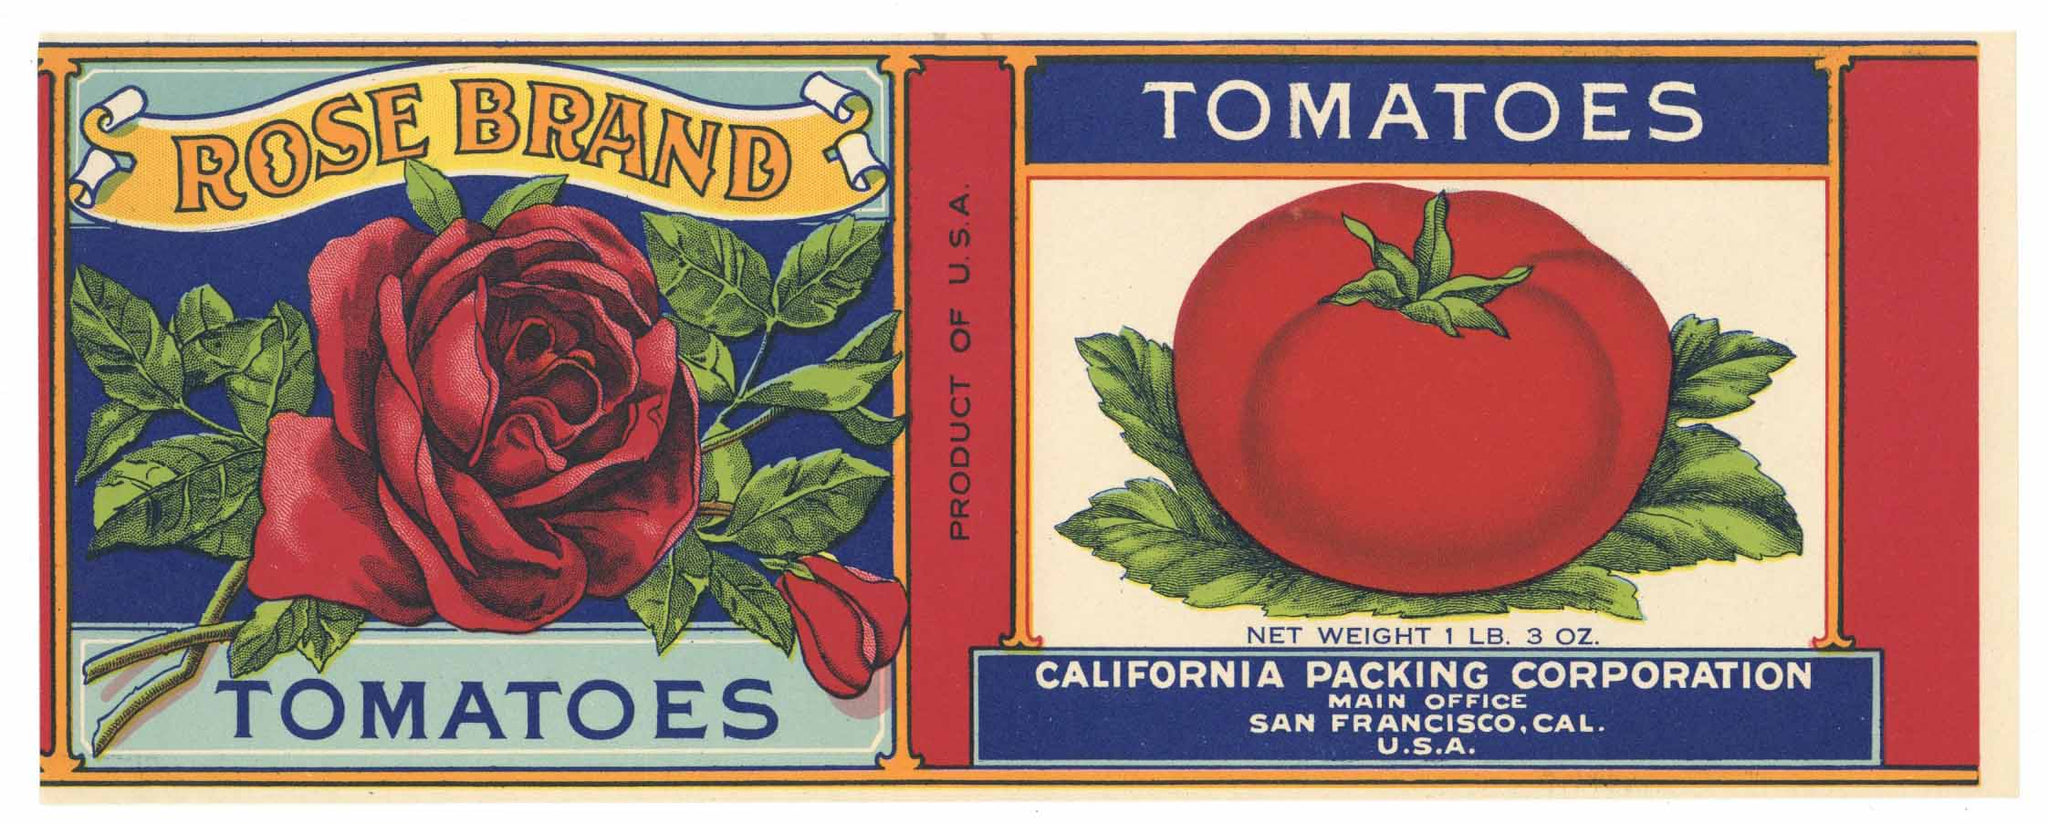 Rose Brand Vintage Tomato Can Label